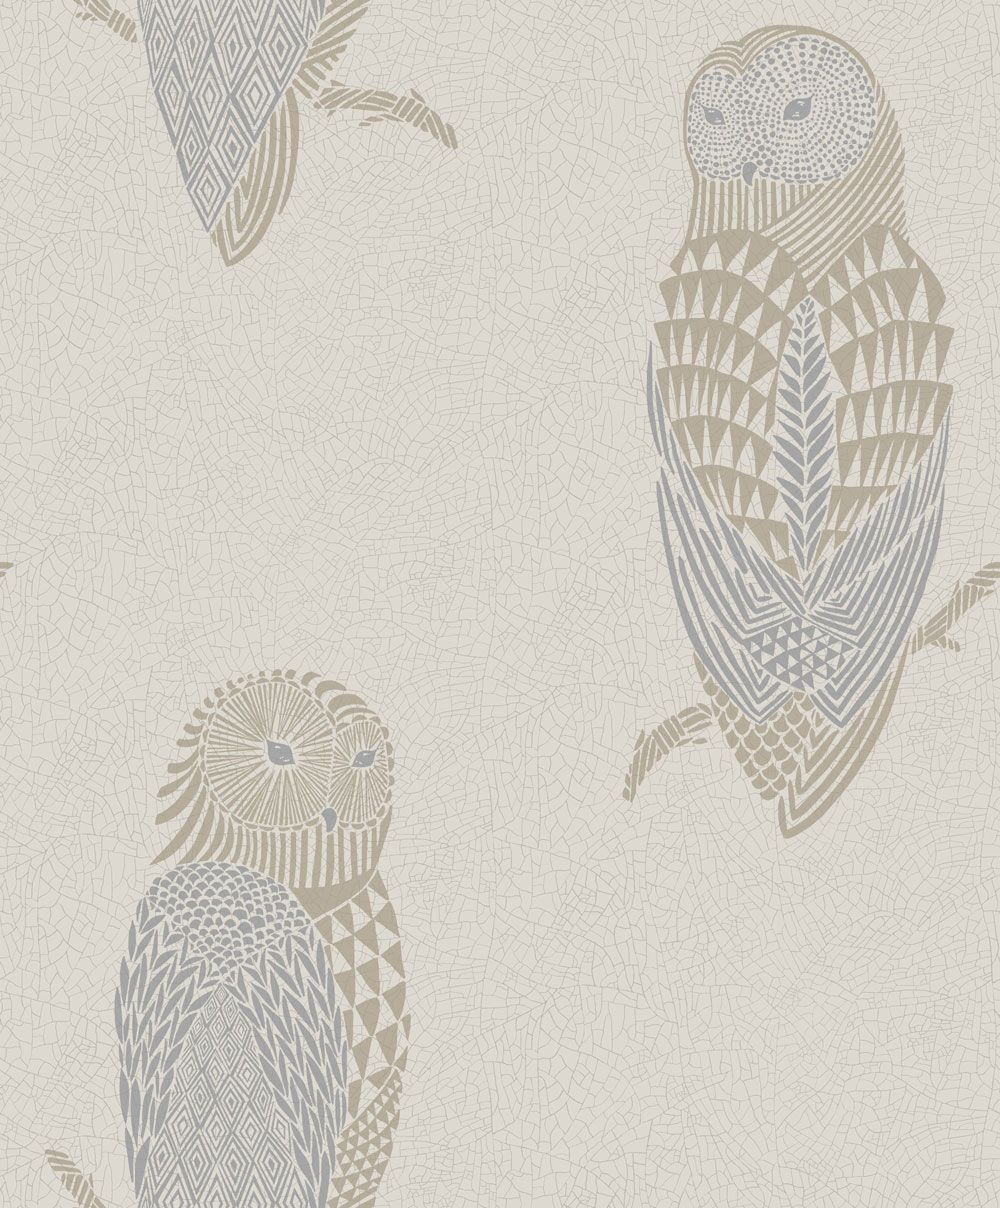 Brooklyn Blue wallpaper by Sandberg Beige wallpaper, Owl